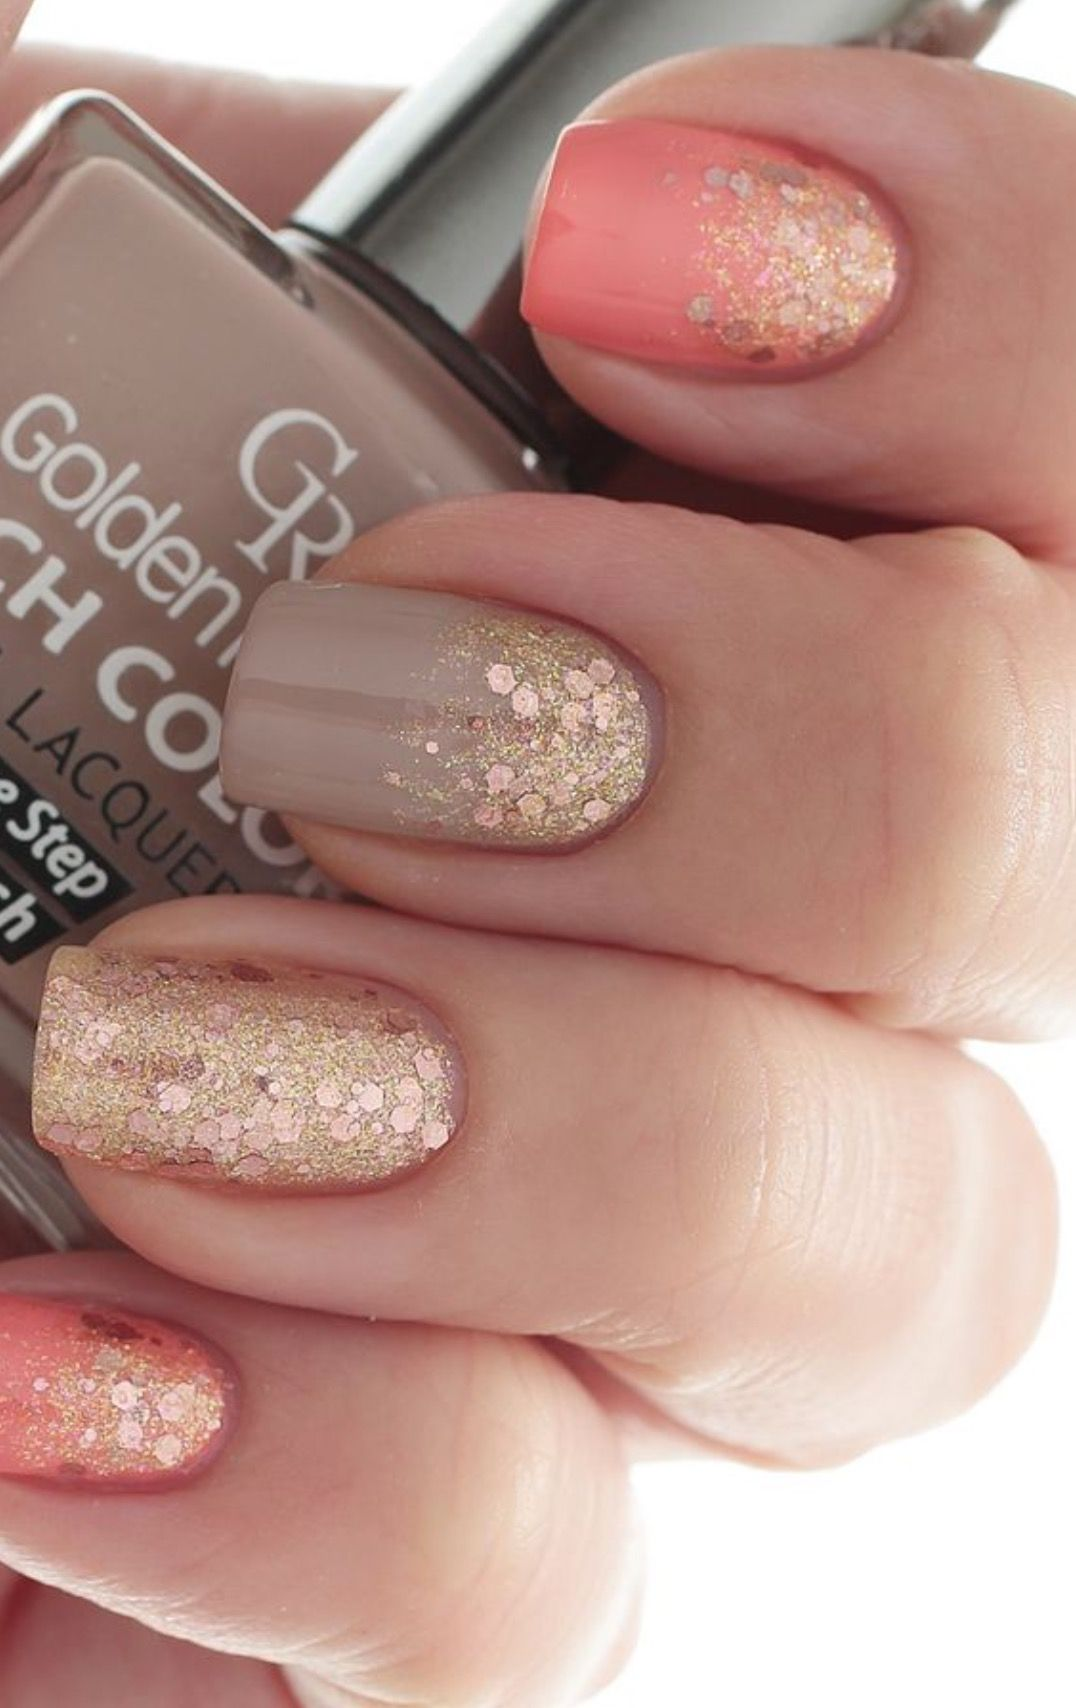 Pin by Brittany Bennett on Nails | Pinterest | Makeup, Hair makeup ...